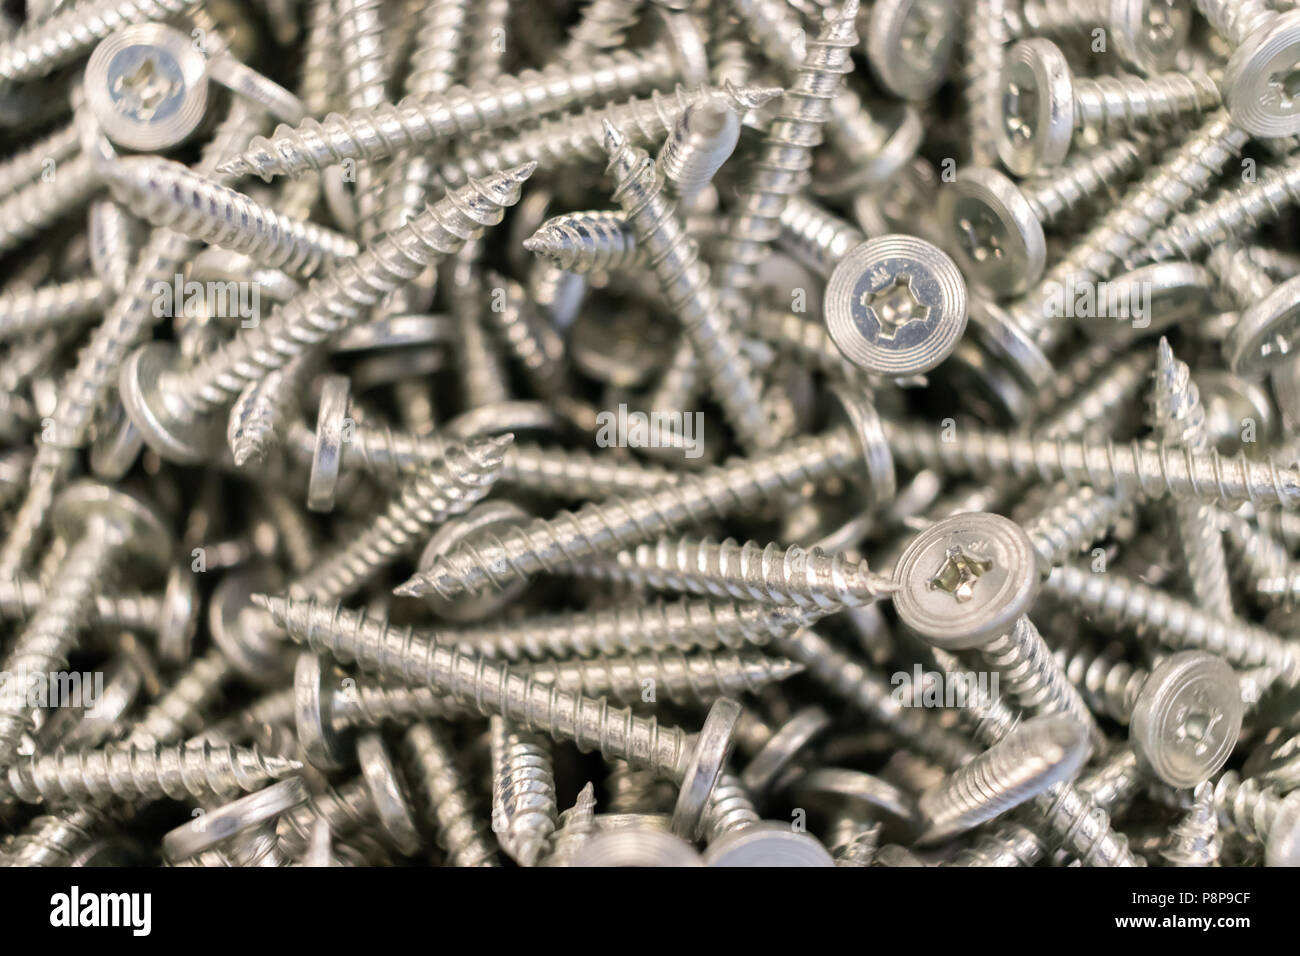 Collection of Screws in bucket - Stock Image